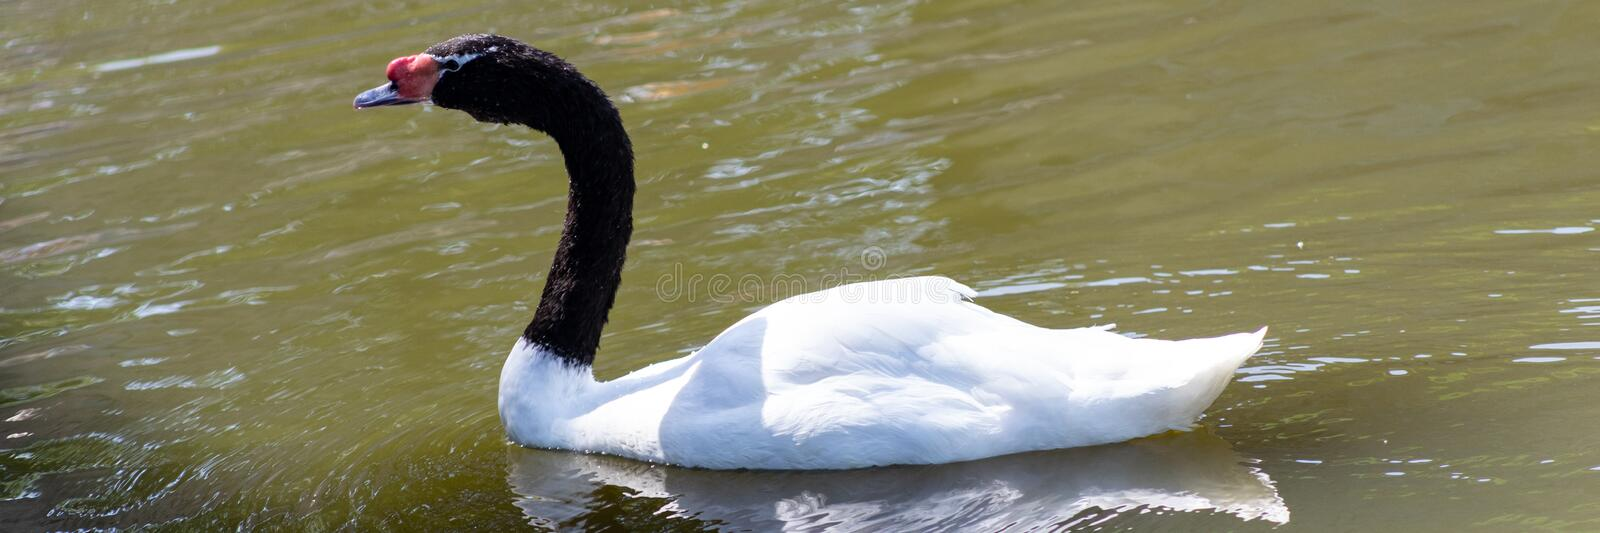 Black Necked Swan Cygnus melancoryphus is a swan that is the largest waterfowl native to South America royalty free stock photo